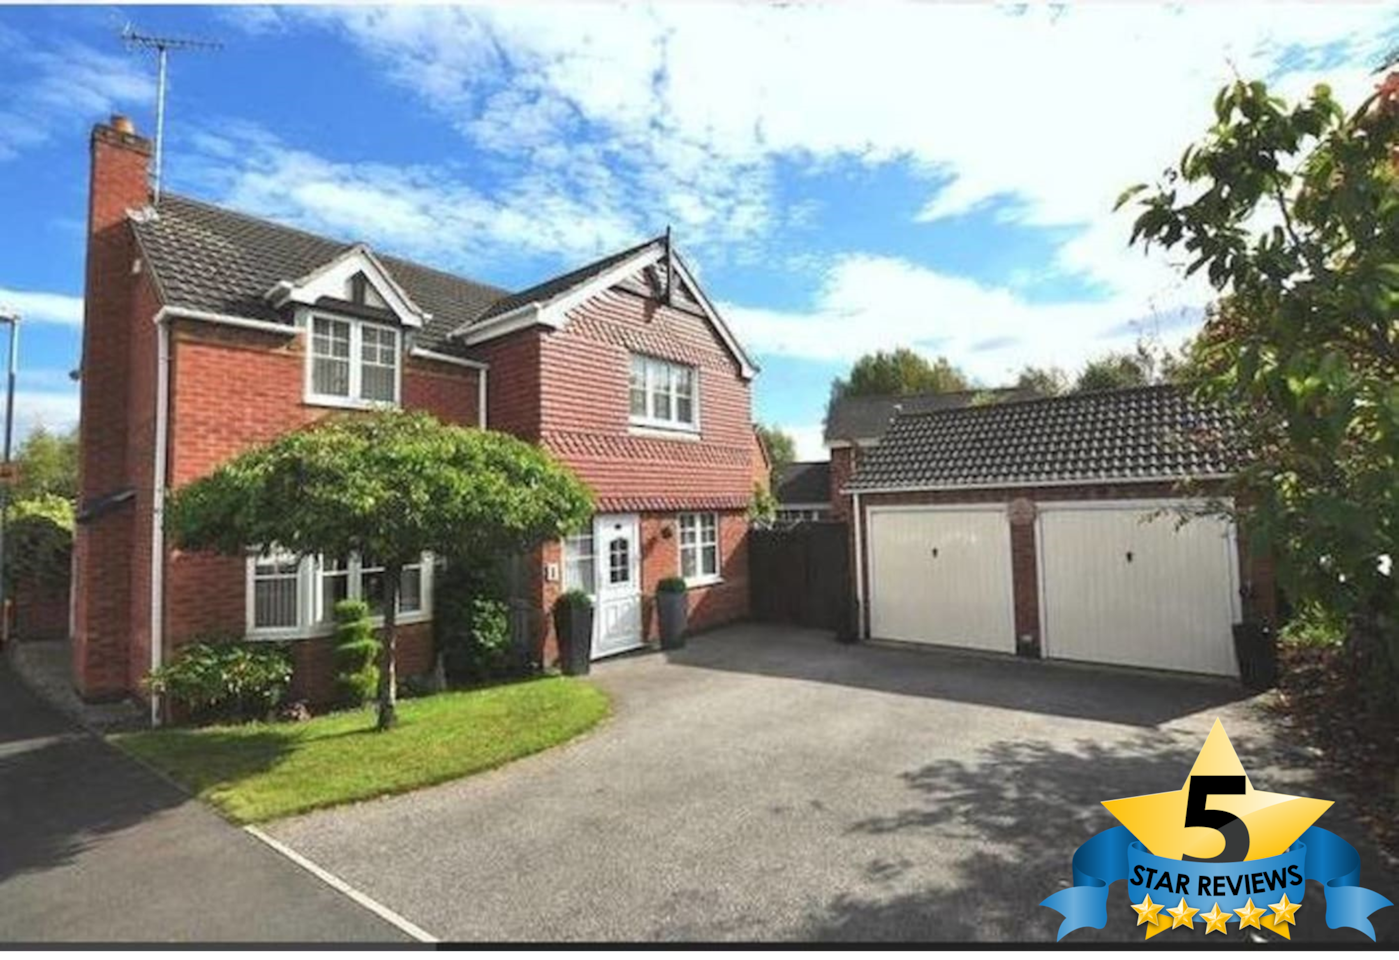 Executive 4 Bed detached home with enough parking for up to 4 cars.